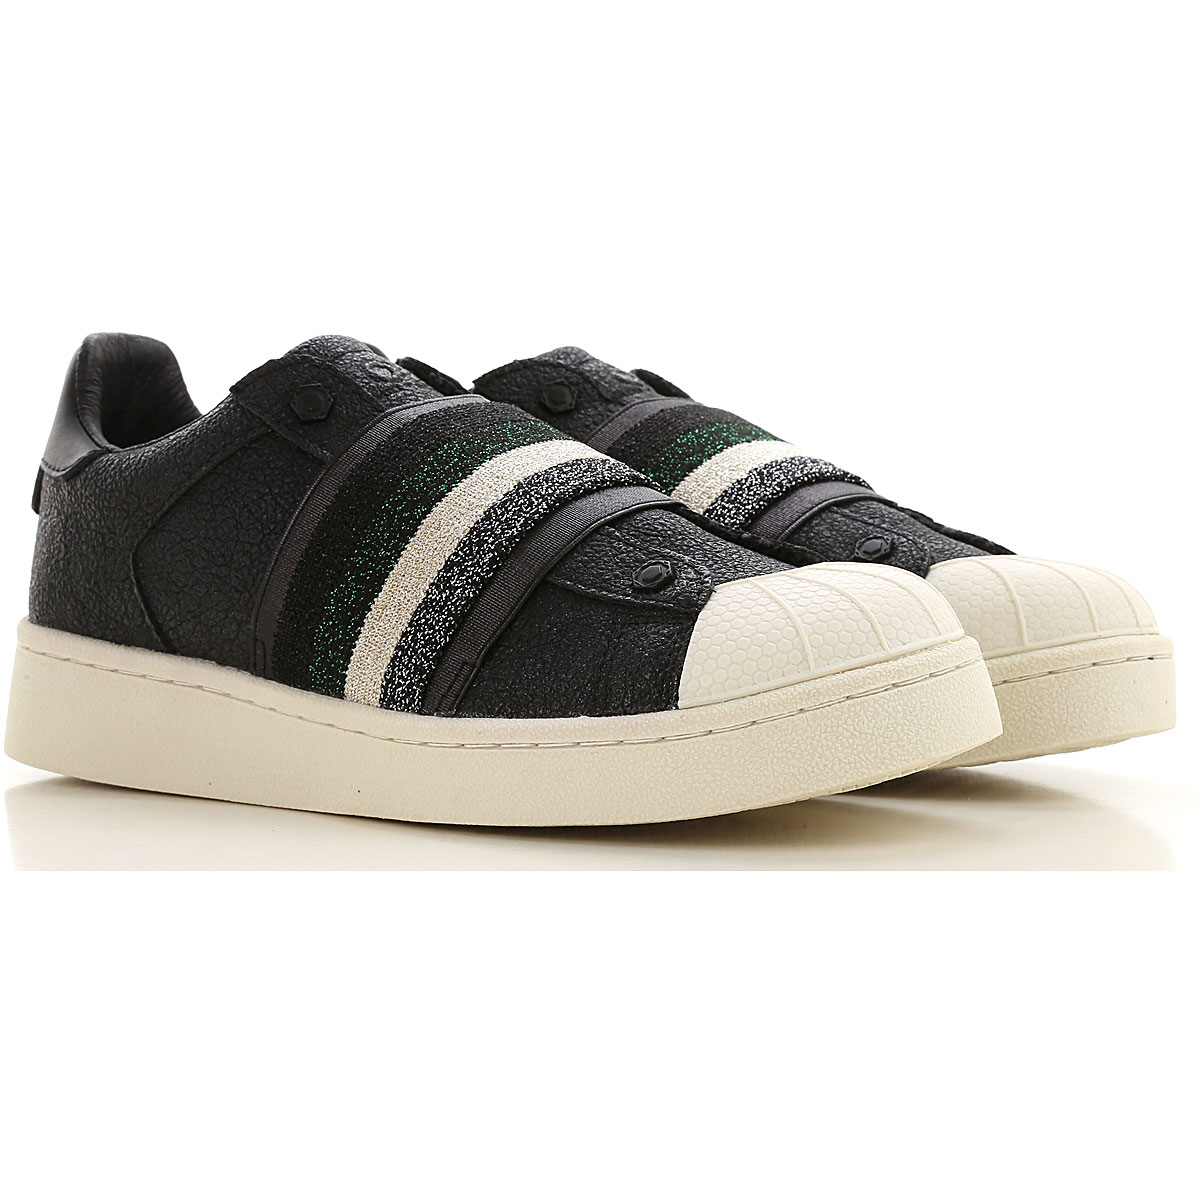 Moa Master of Arts Sneakers for Women, Black, Leather, 2019, 5 6